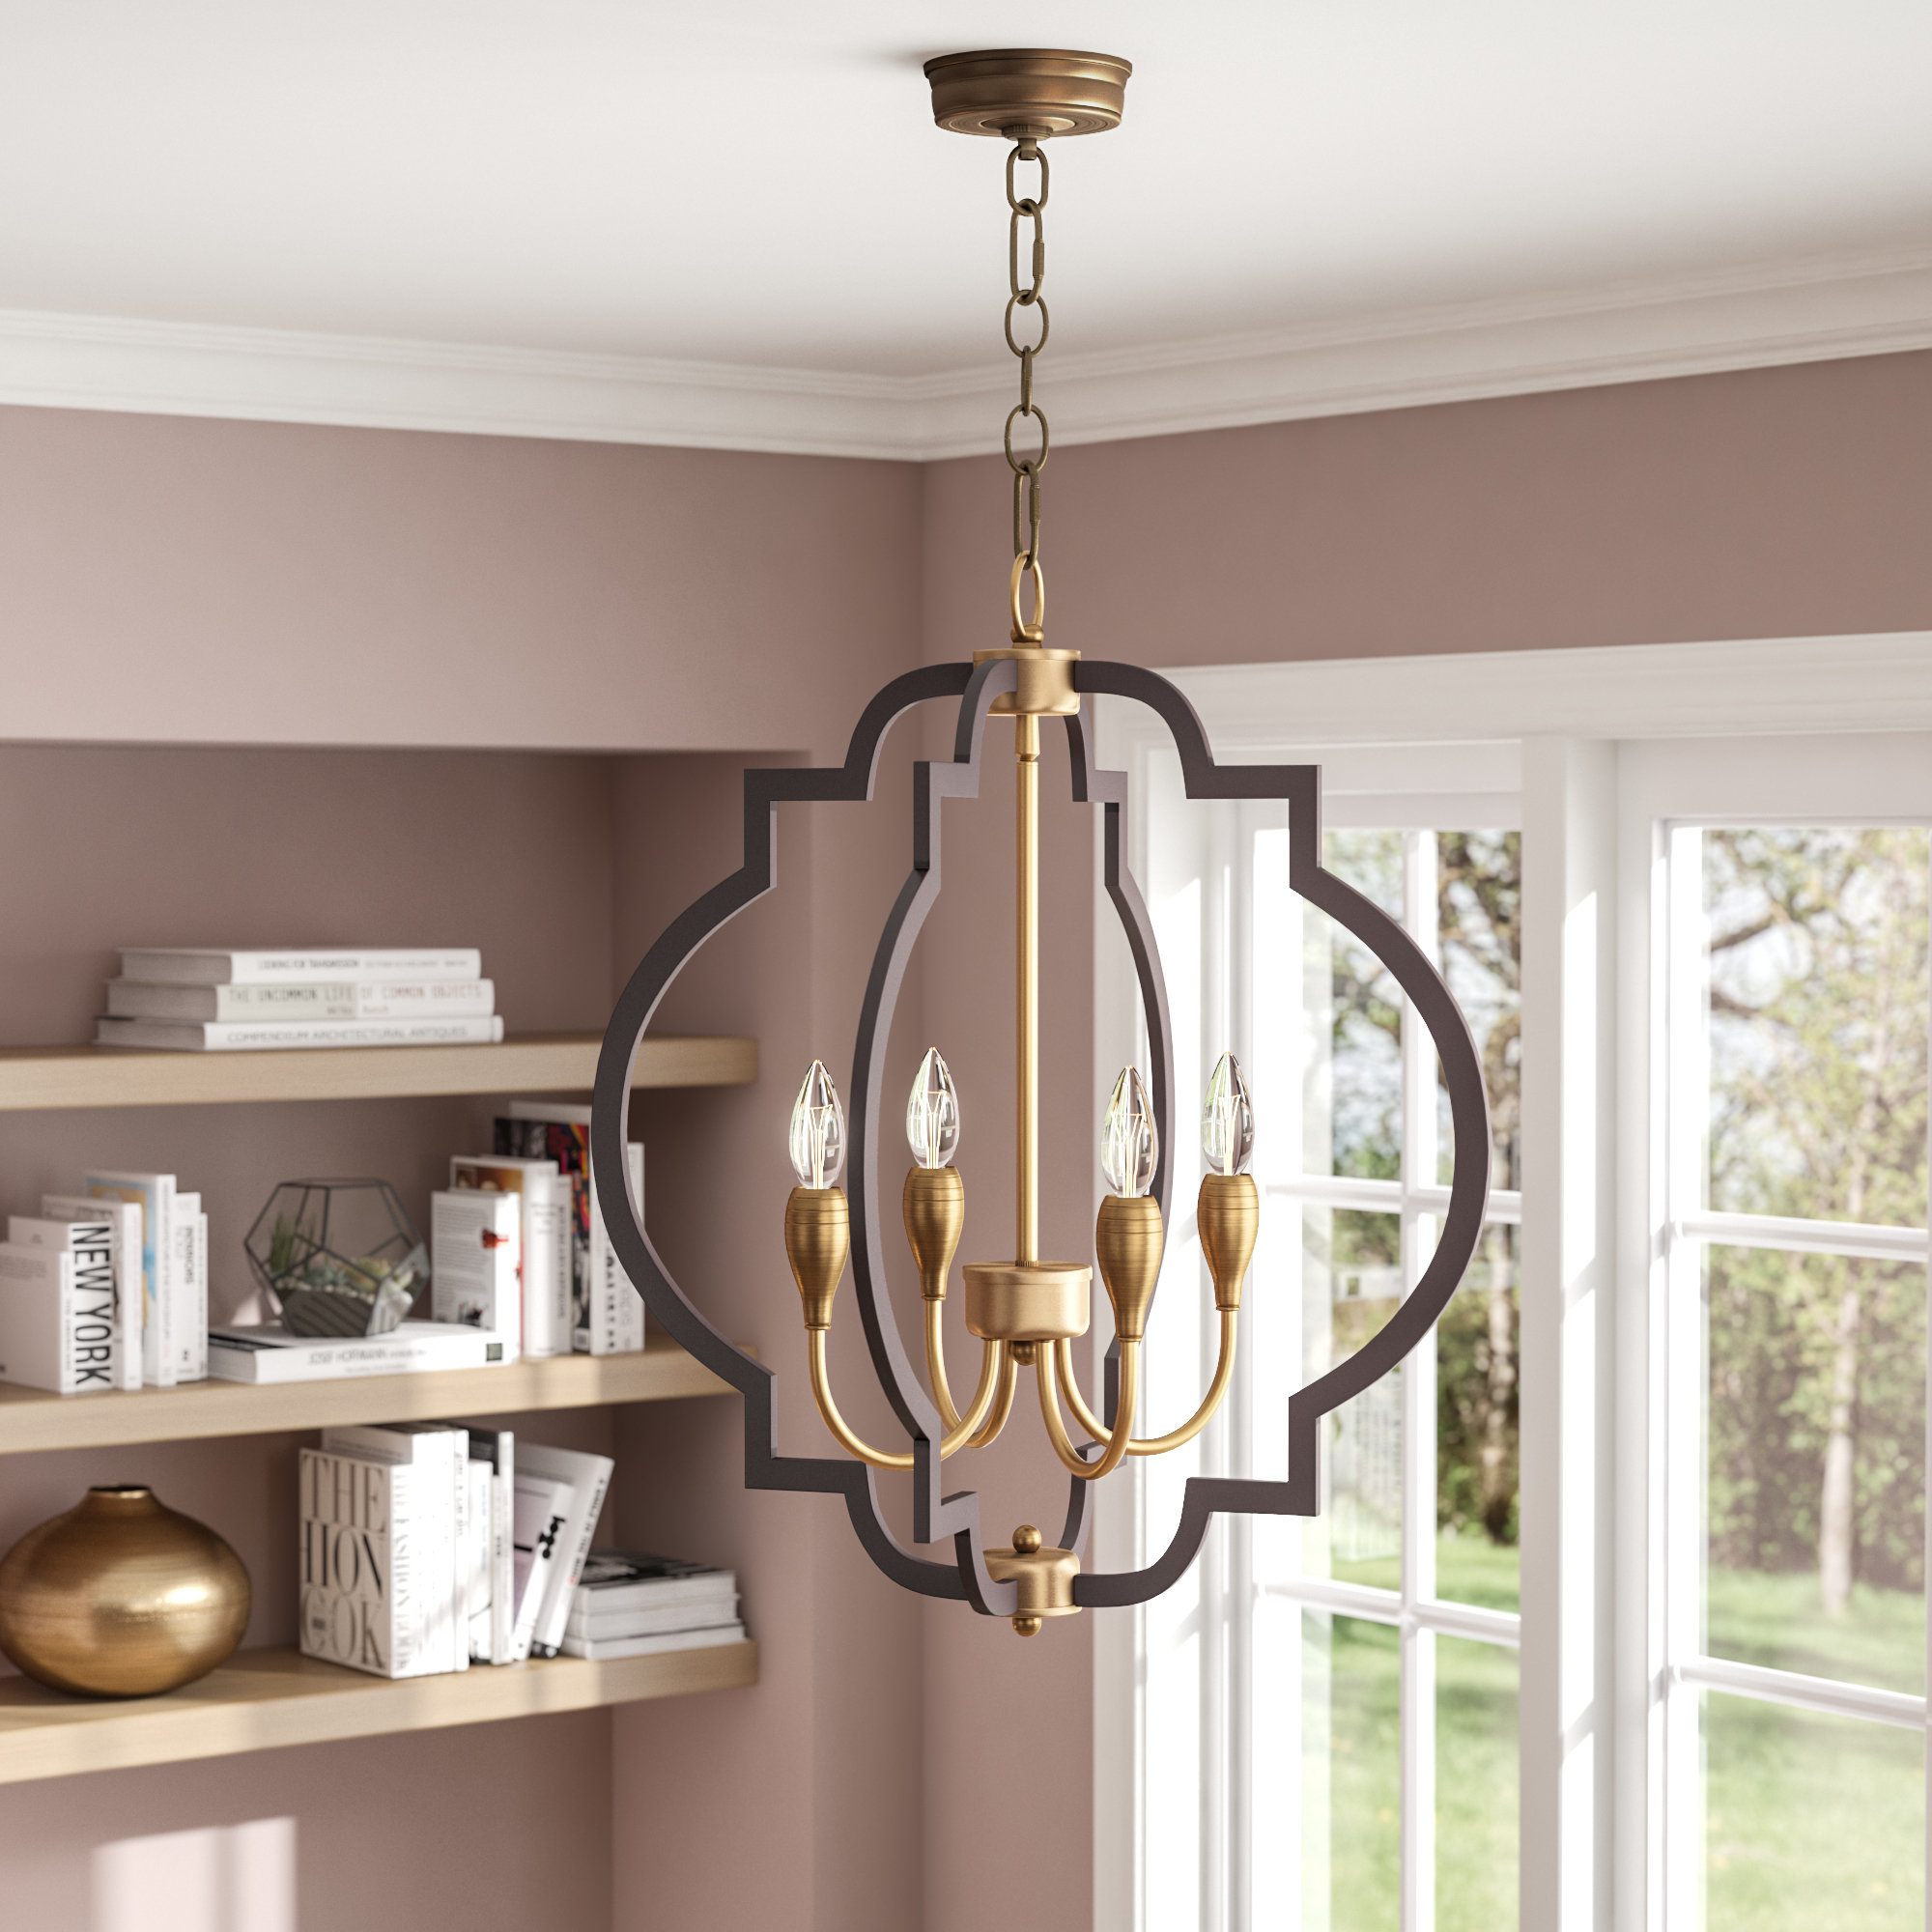 Astin 4 Light Geometric Chandelier Throughout Kaycee 4 Light Geometric Chandeliers (View 4 of 30)